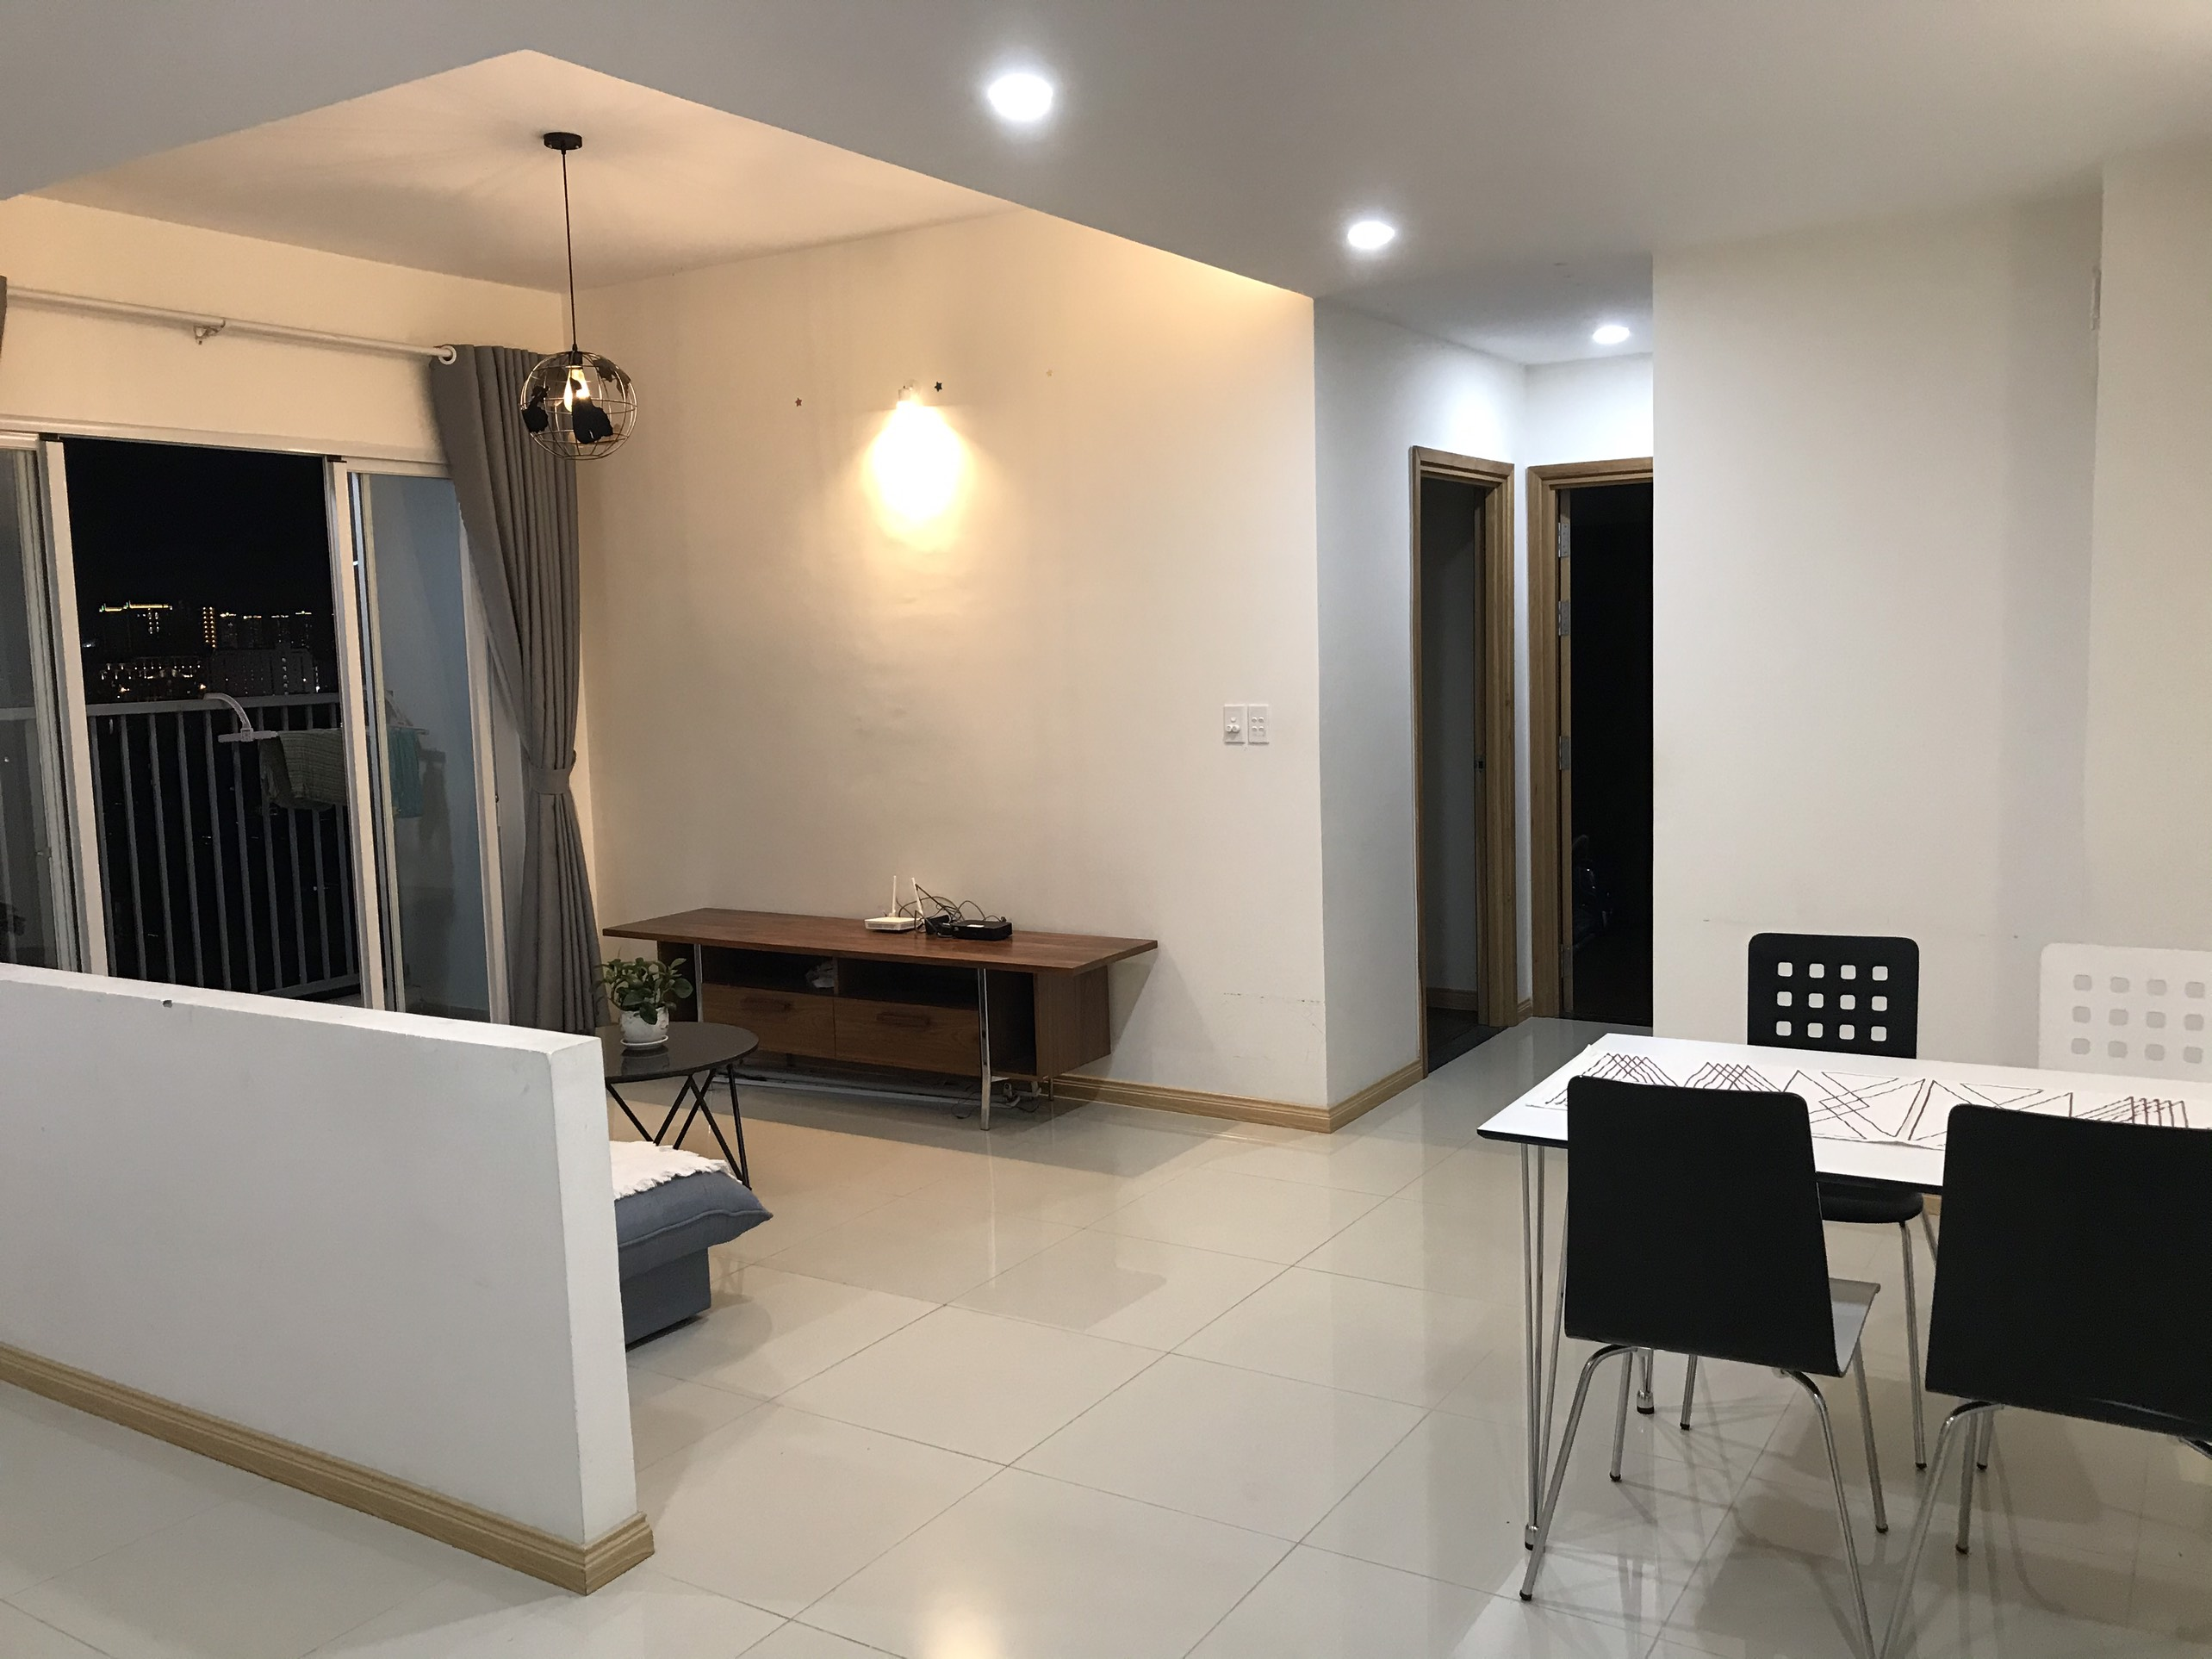 rent Jamona City - 2 bedroom - 2 wc